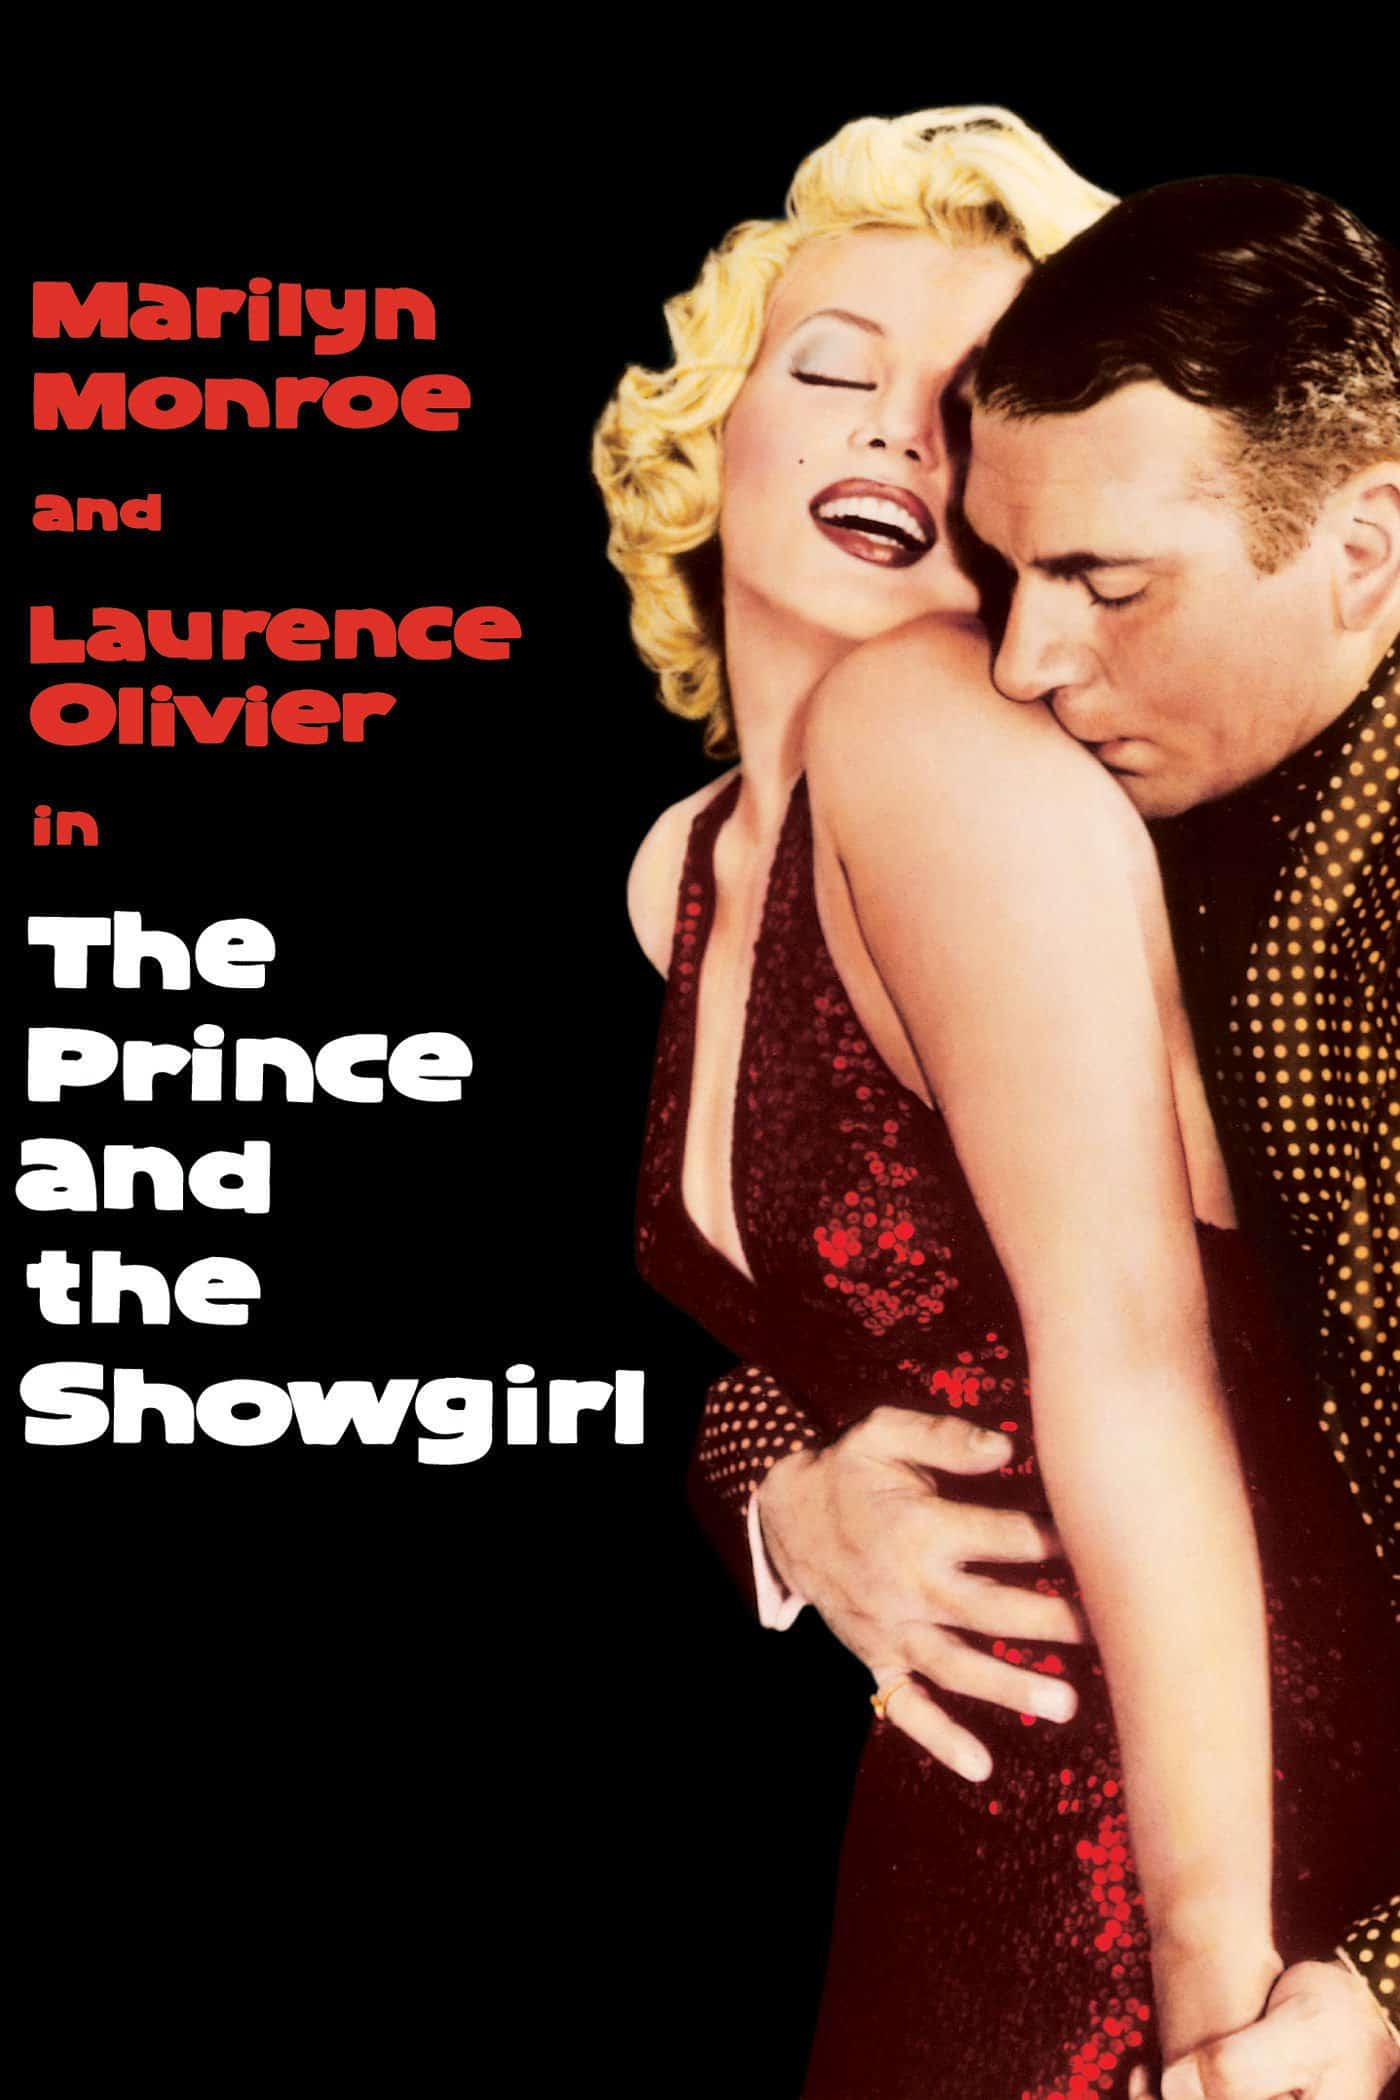 The Prince and the Showgirl, 1957